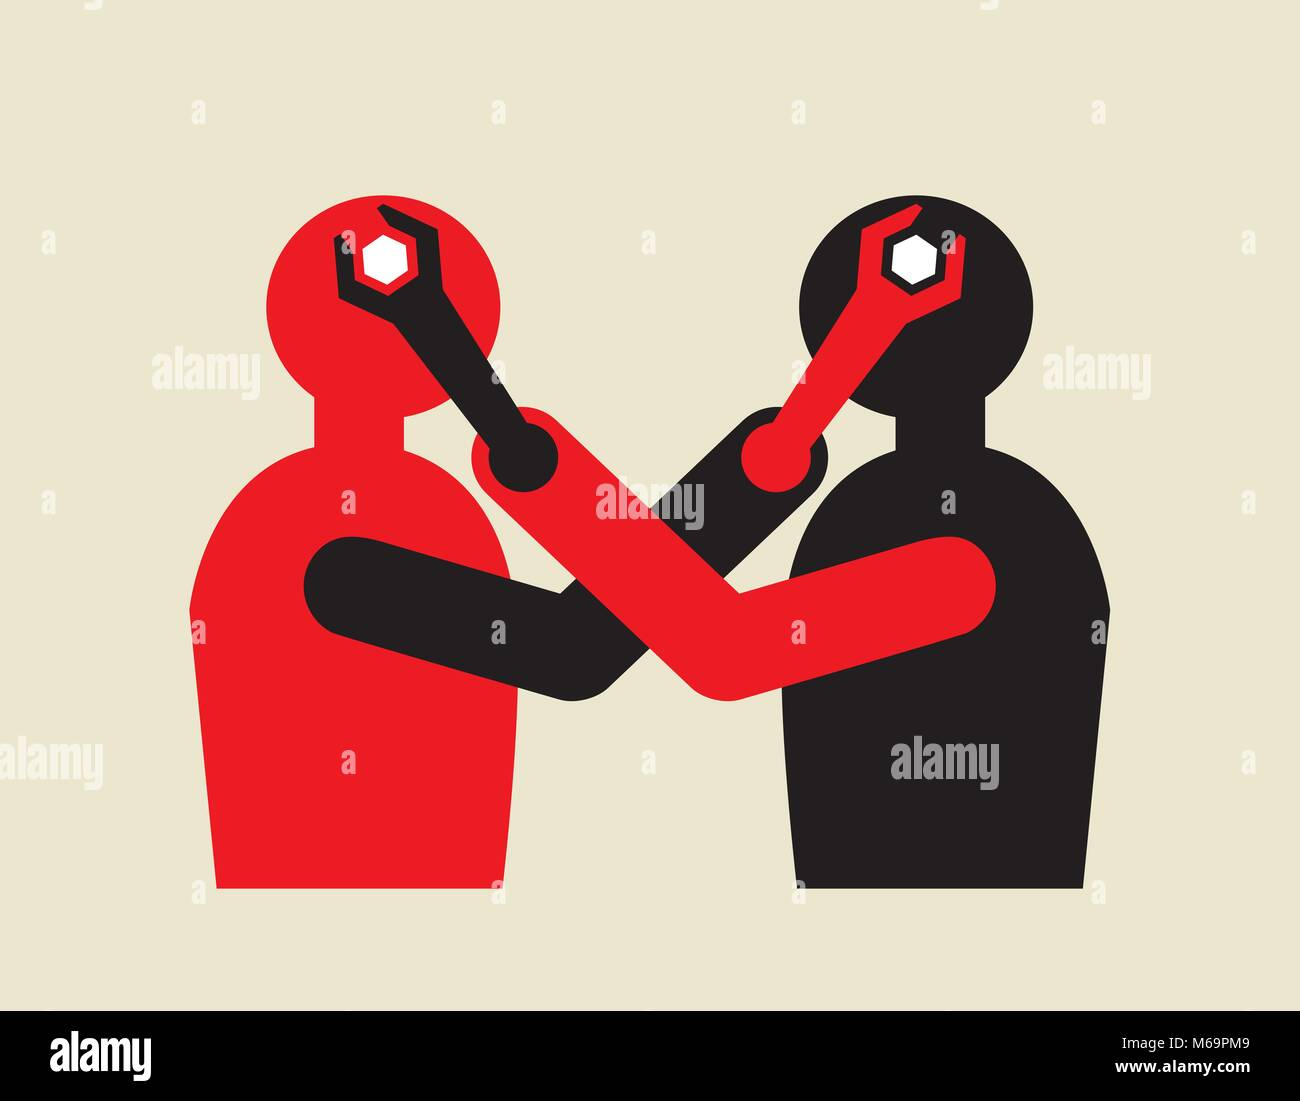 controversy, mutual influential  mind manipulation using wrench - Stock Image